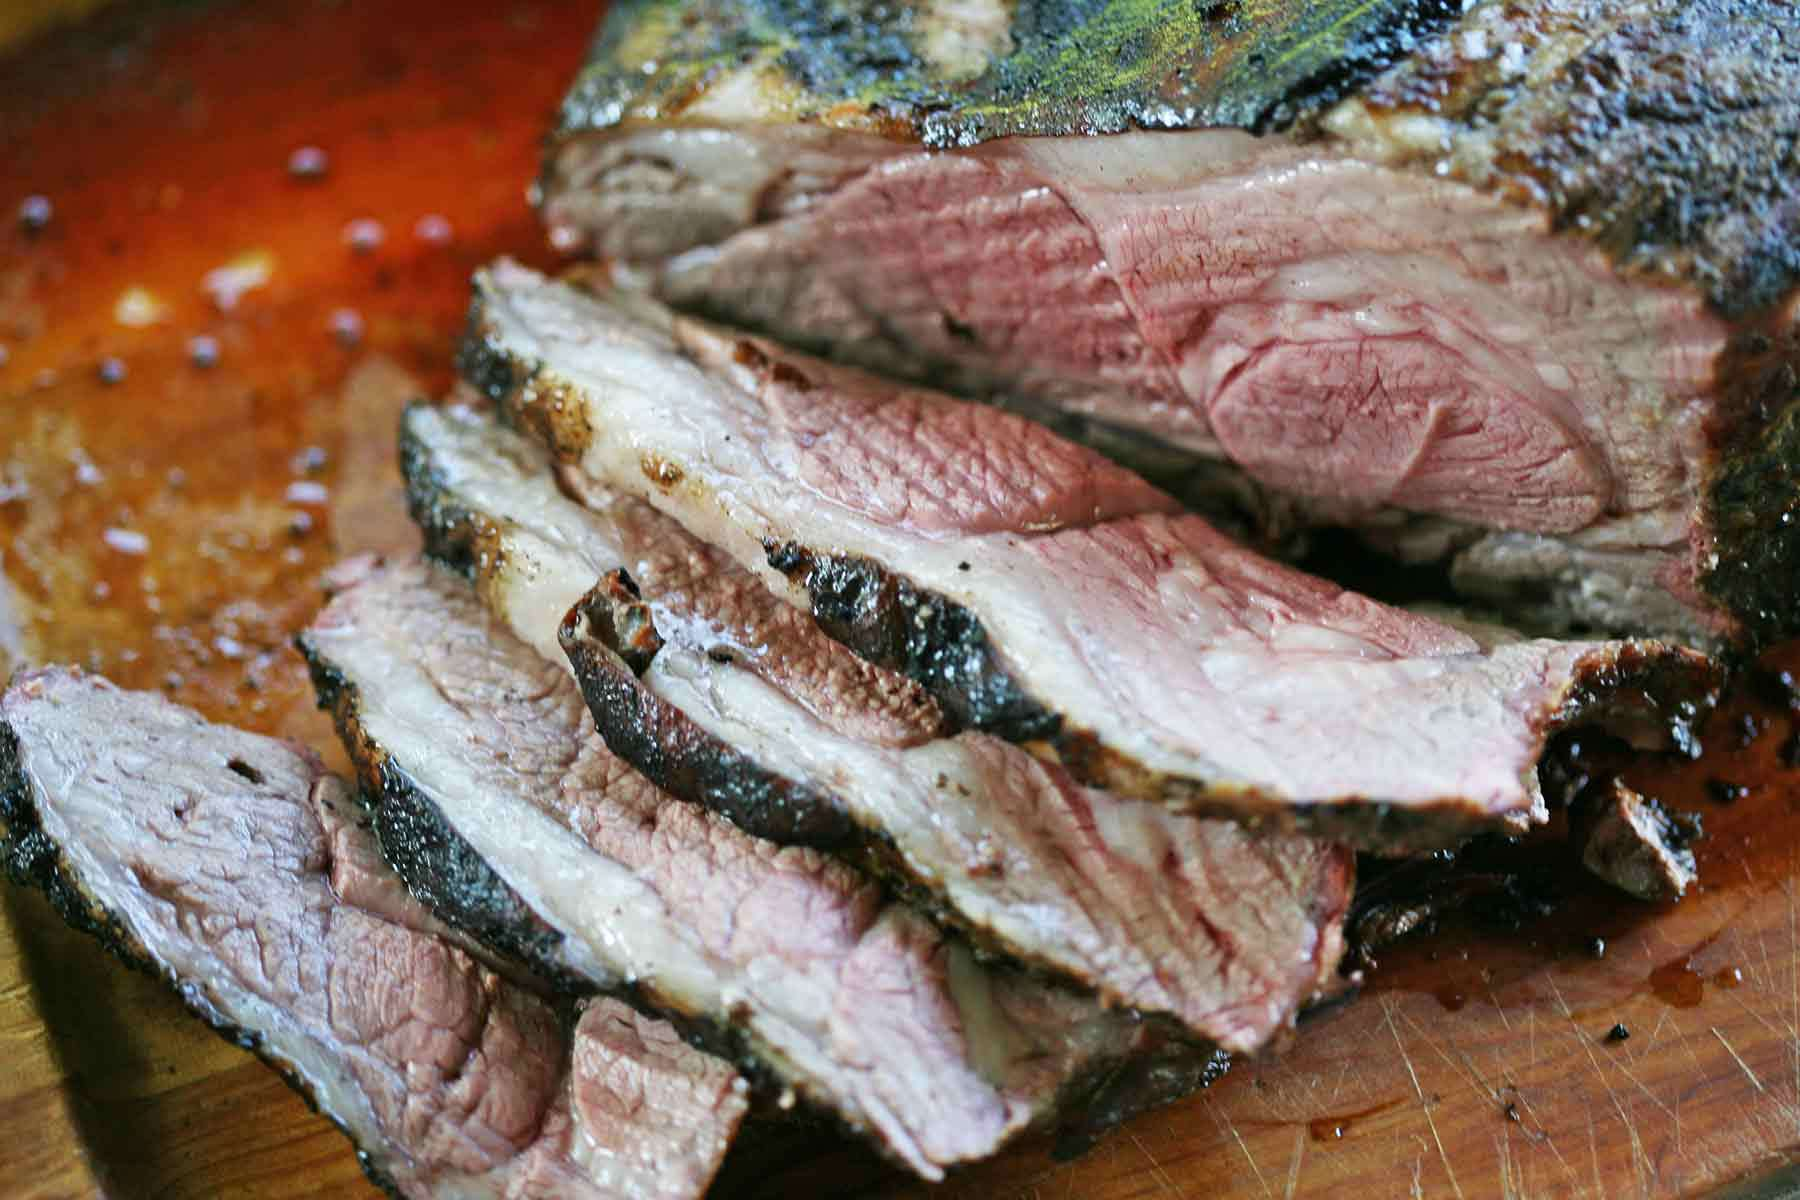 Grilled and Marinated Leg of Lamb cut into pieces